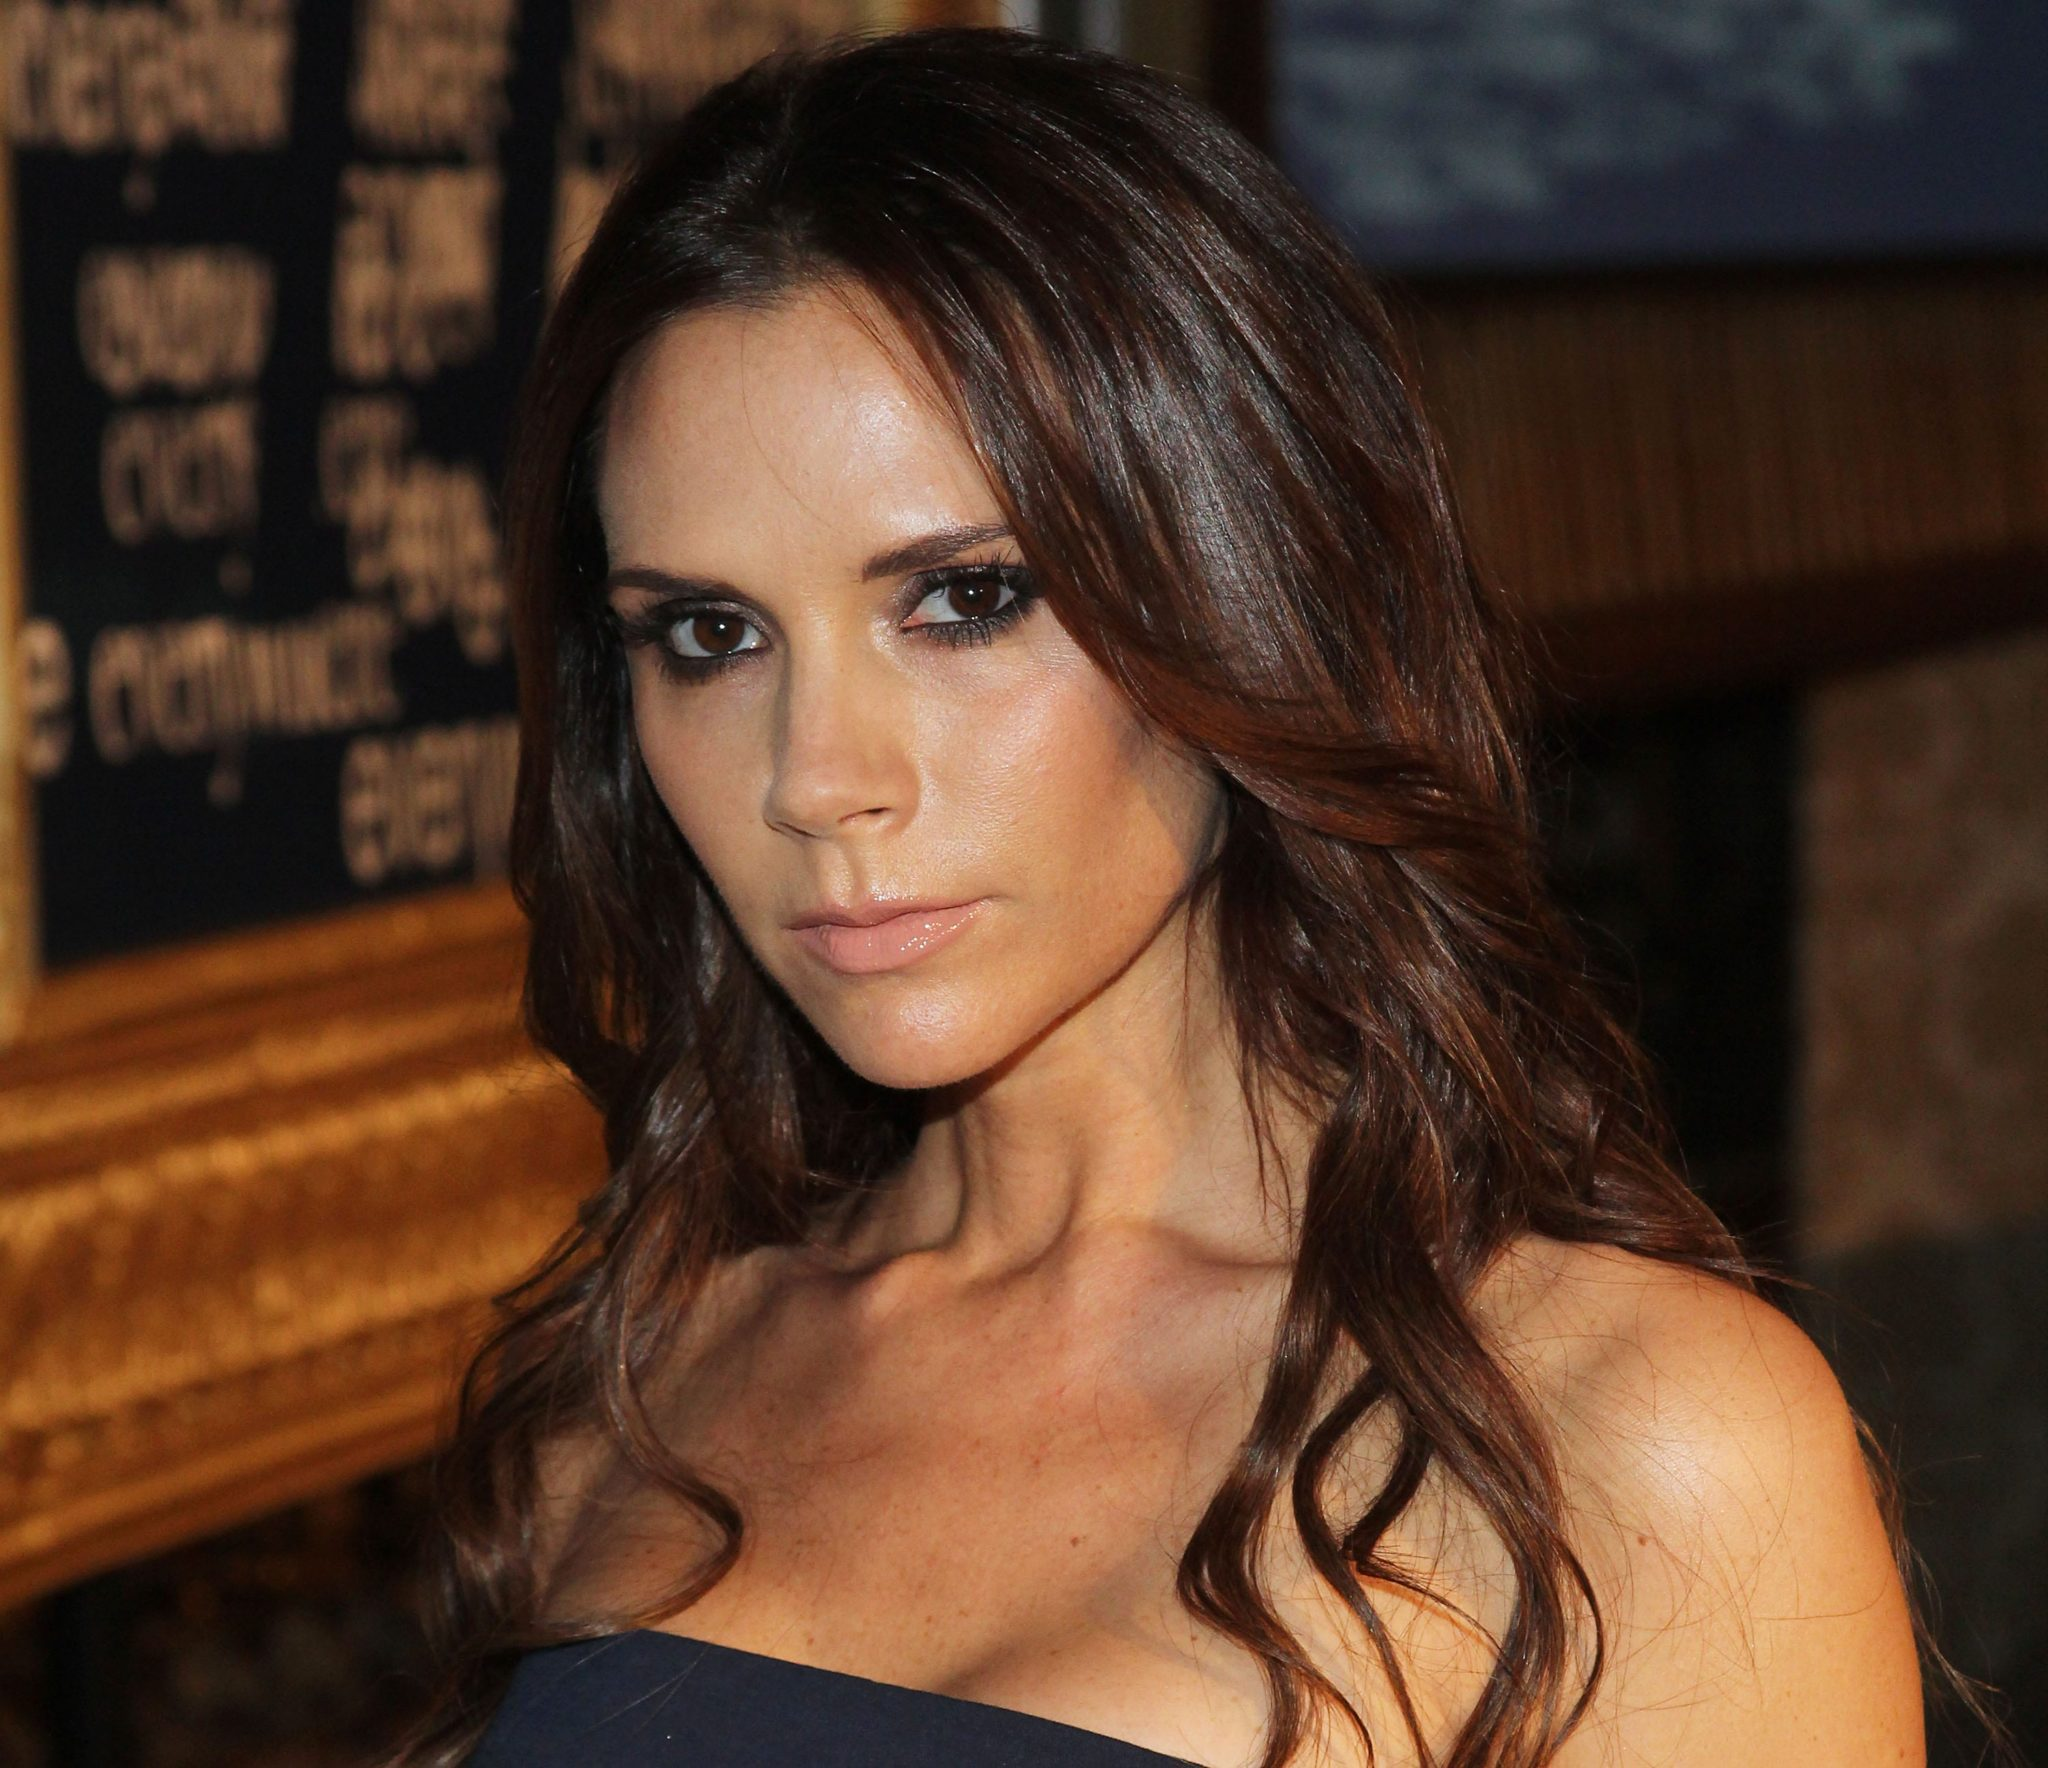 2011 WWD Apparel & Retail CEO Summit - A Conversation With Victoria Beckham